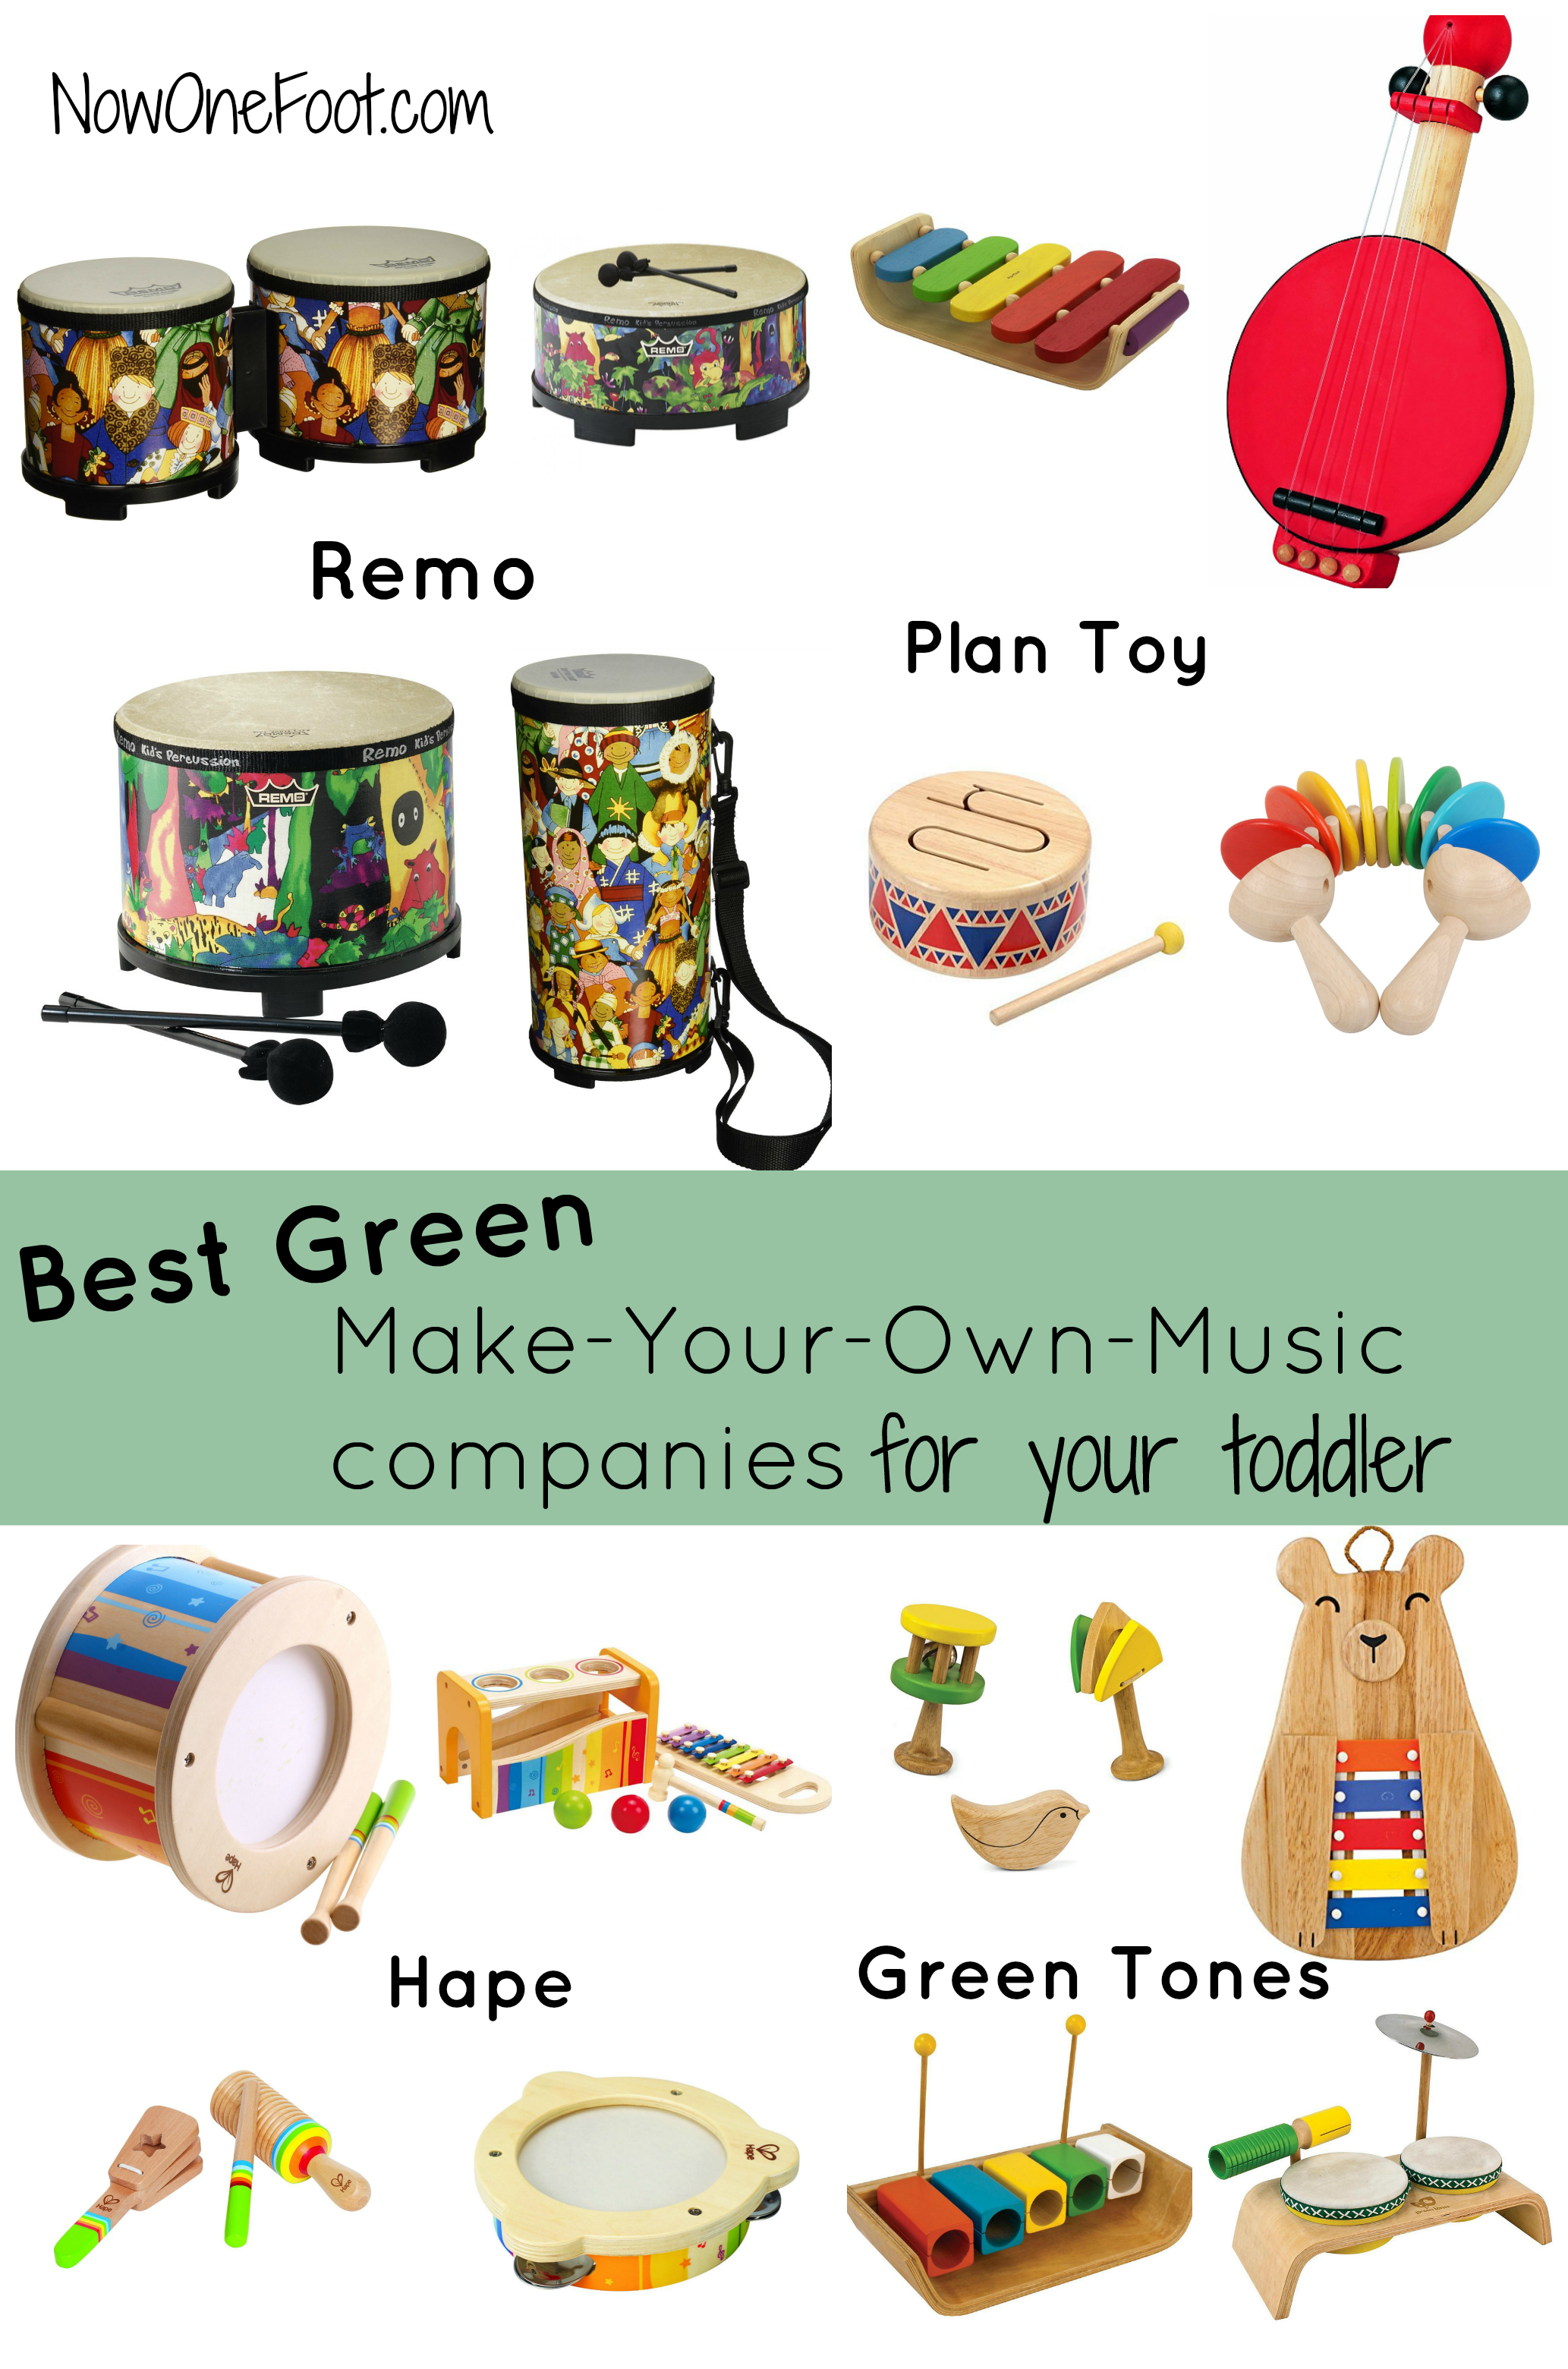 Best Green musical instrument panies for your toddler Now e